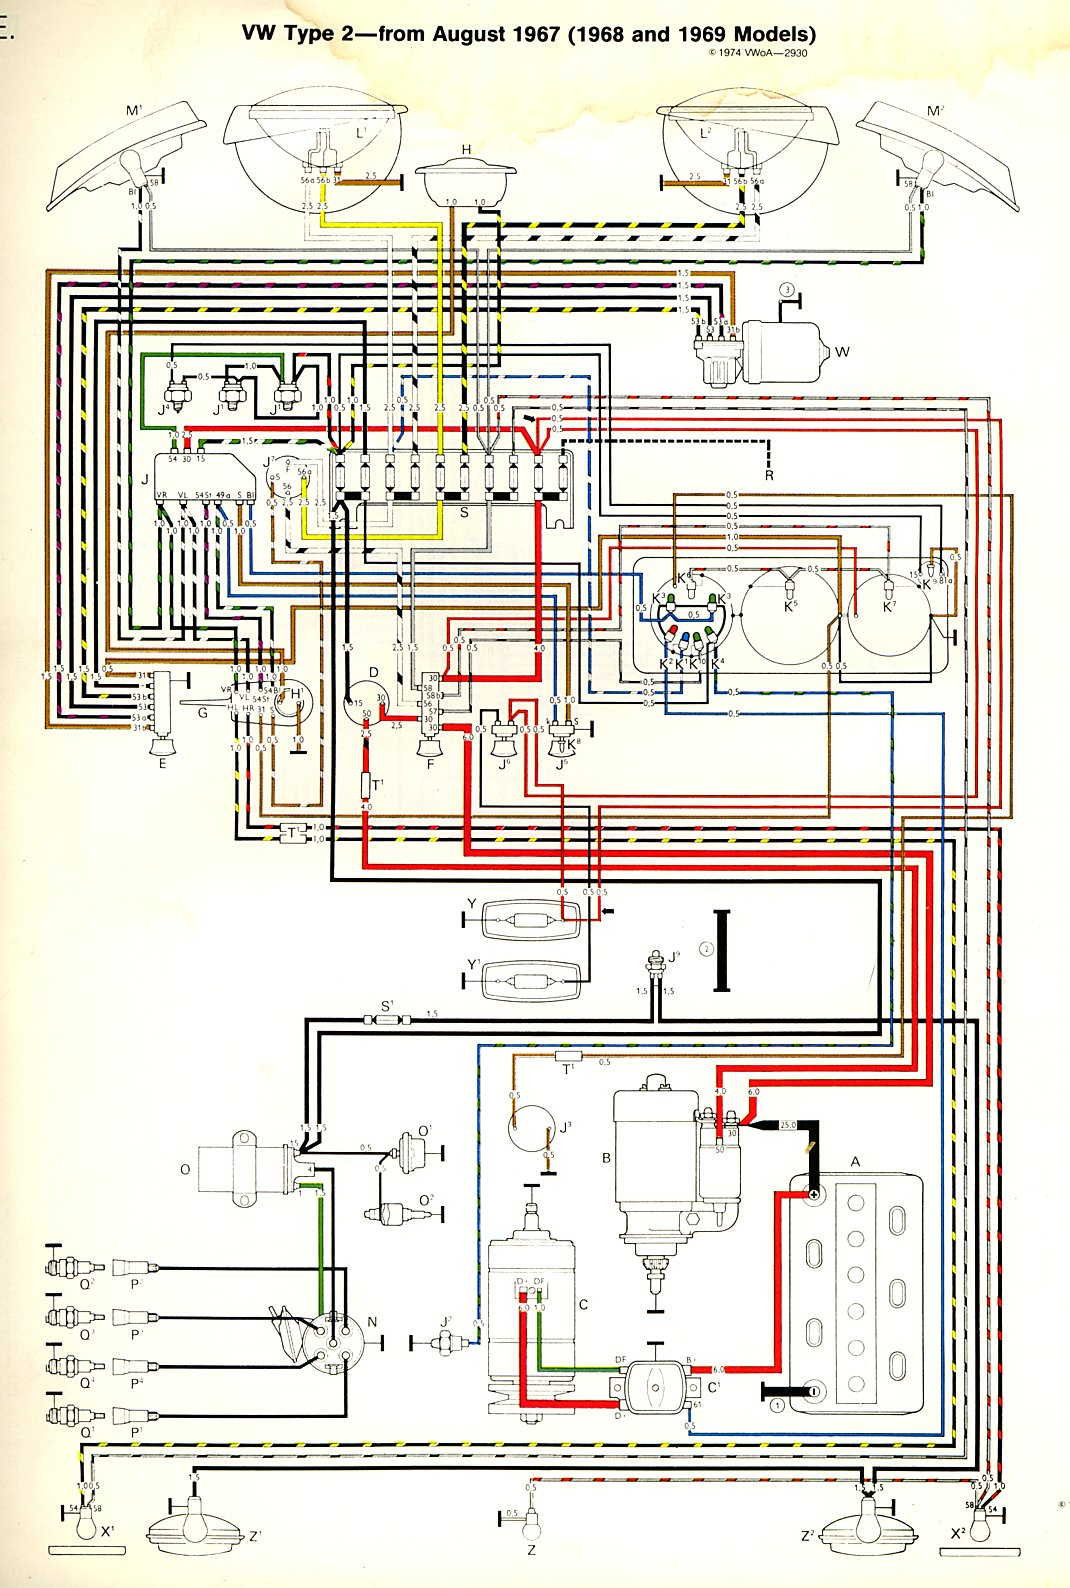 baybus_6869a 1968 69 bus wiring diagram thegoldenbug com 1973 vw beetle wiring diagram at n-0.co